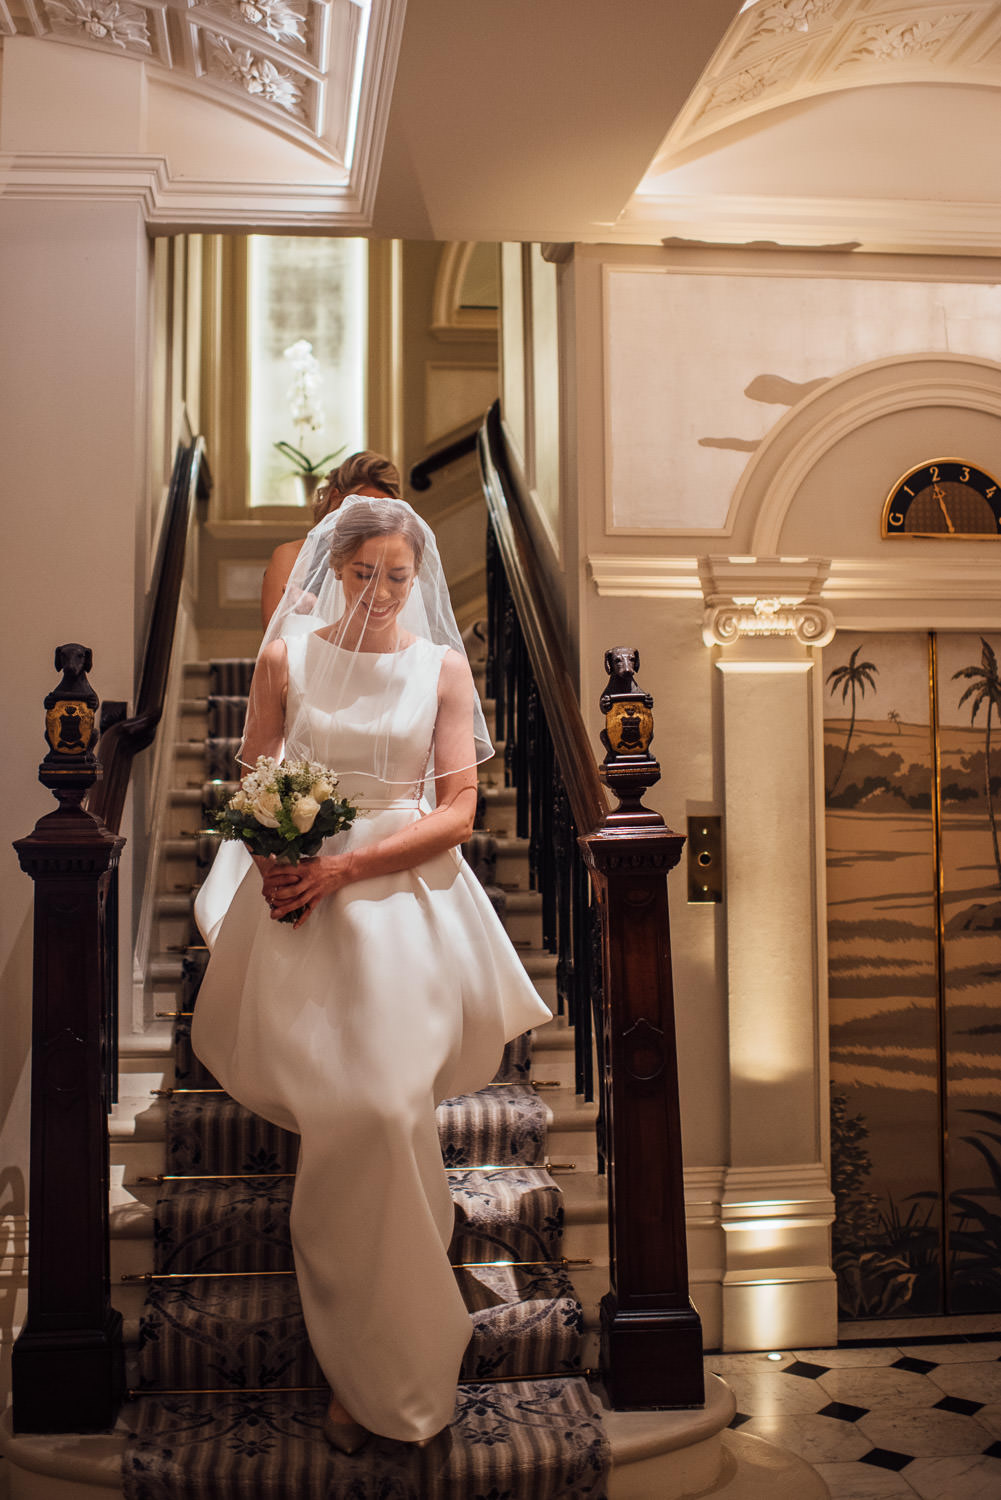 chic pronovias wedding gown in the goring hotel london wedding